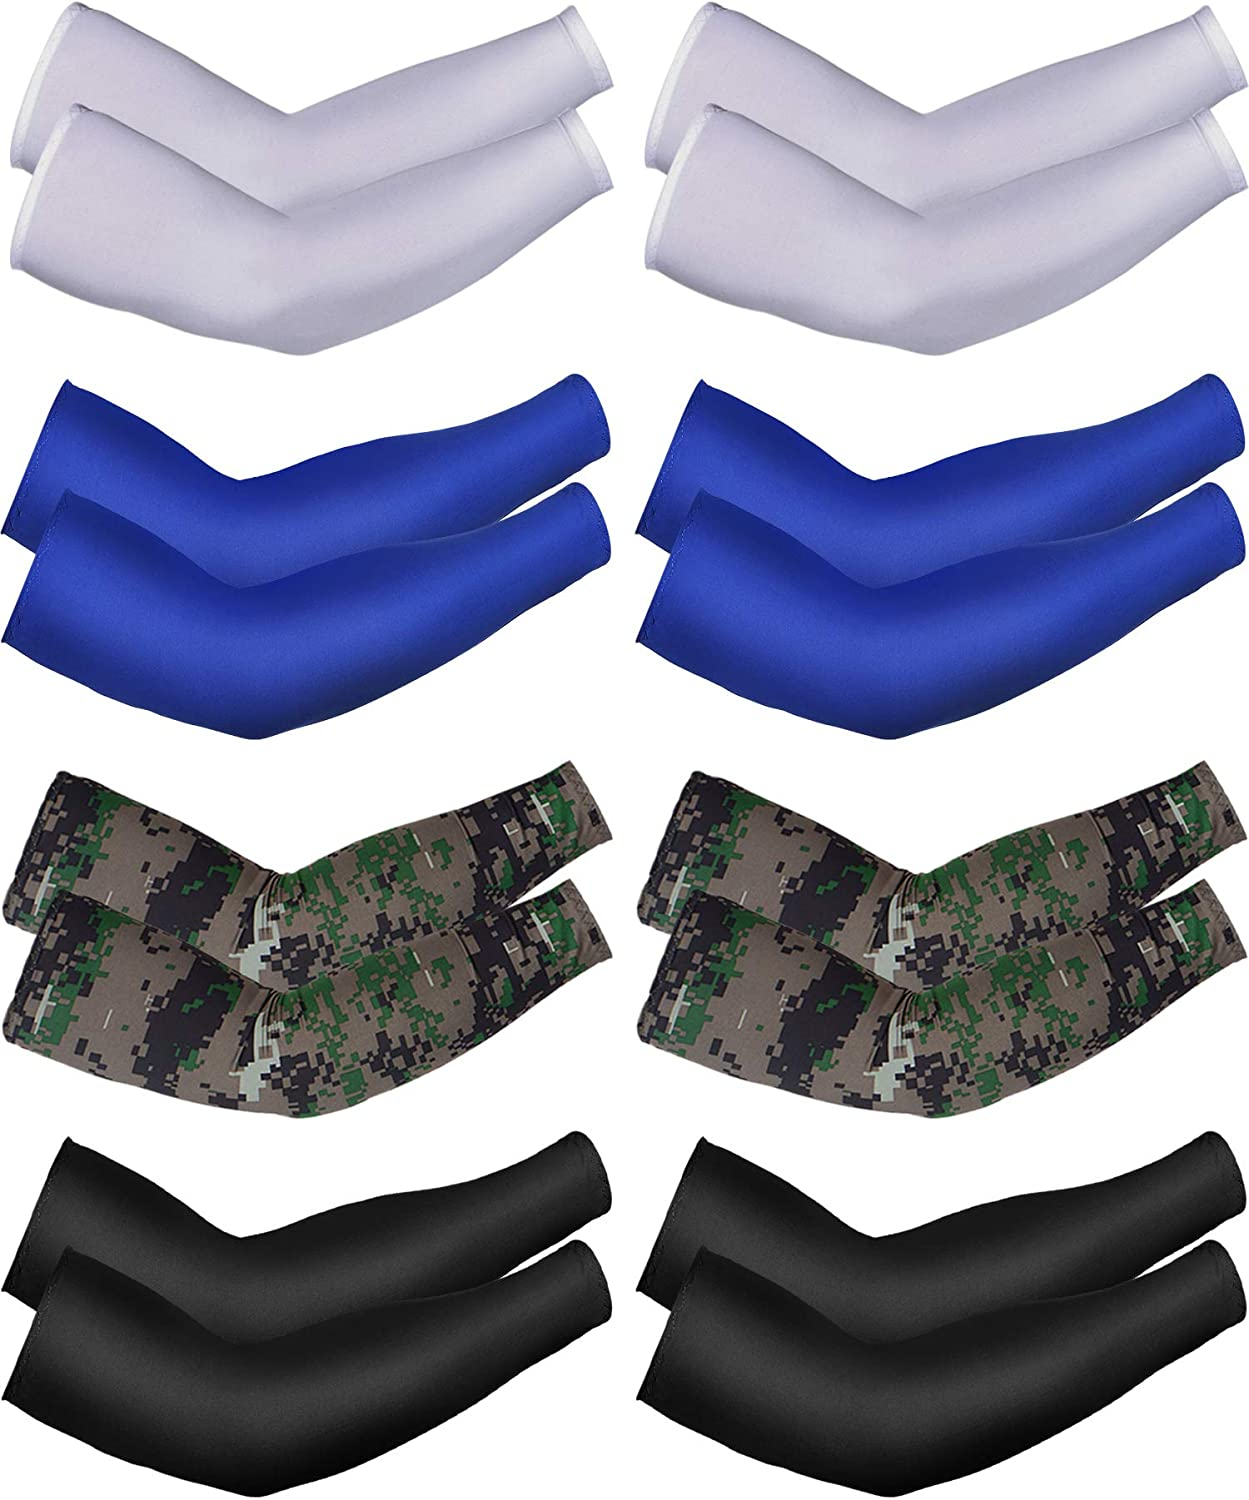 8 Pairs Unisex UV Protection Arm Cooling Sleeves Ice Silk Arm Cover